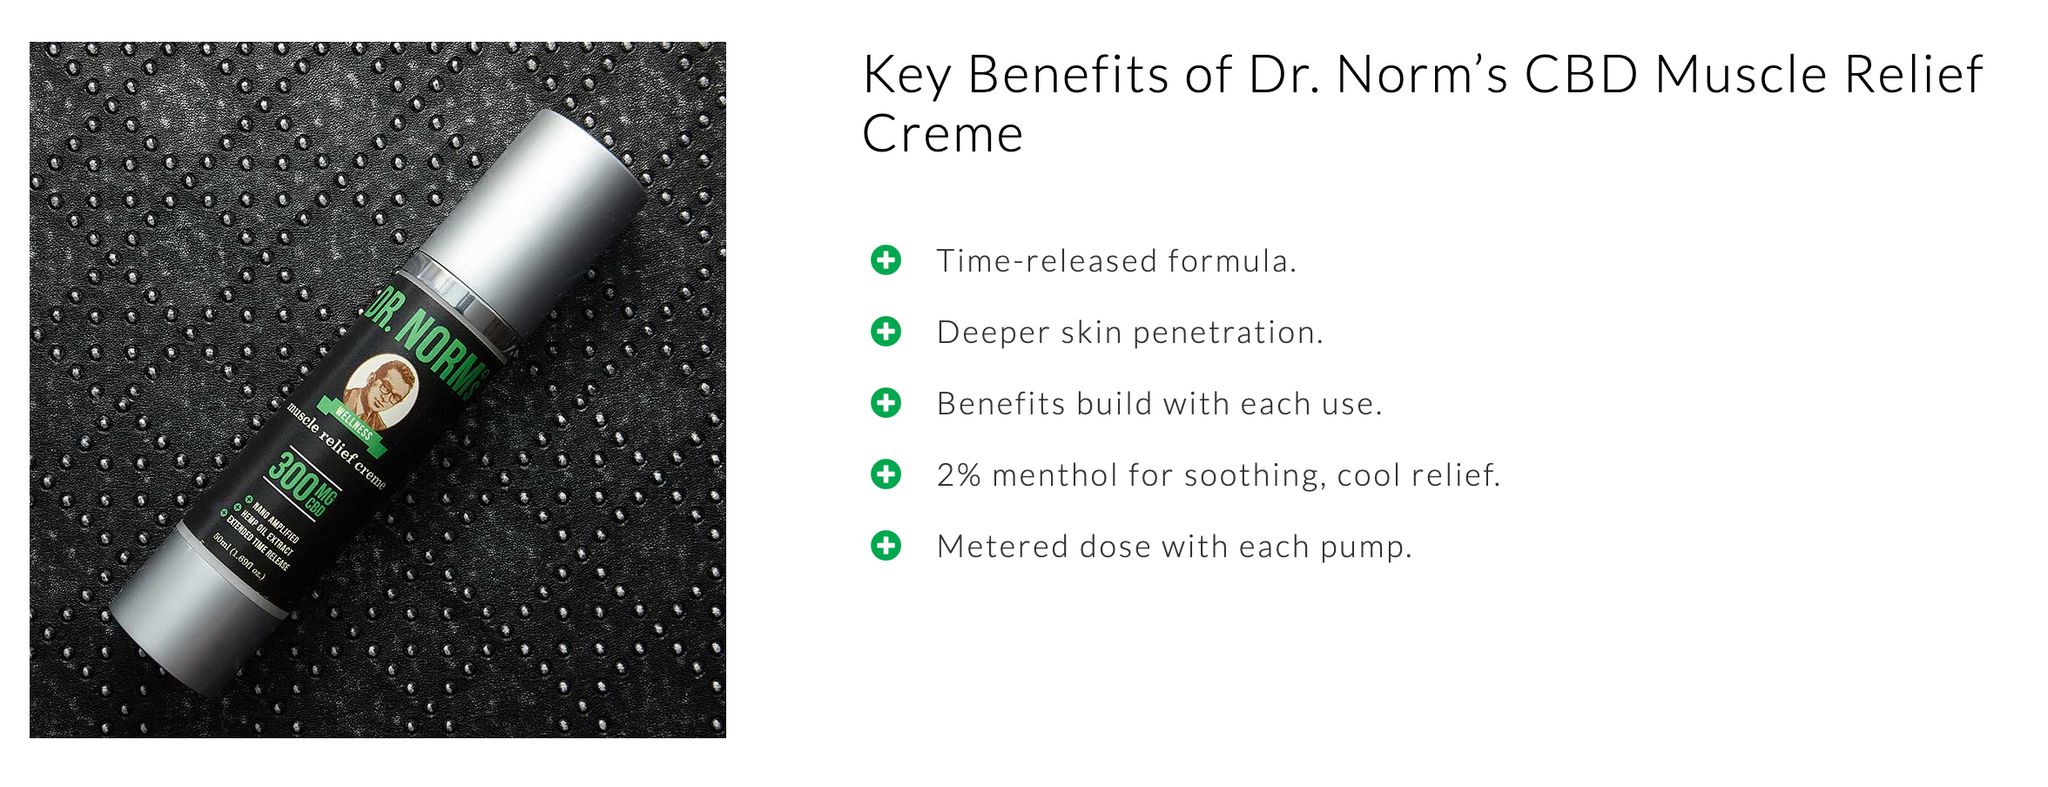 Dr. Norms Muscle Relief Creme